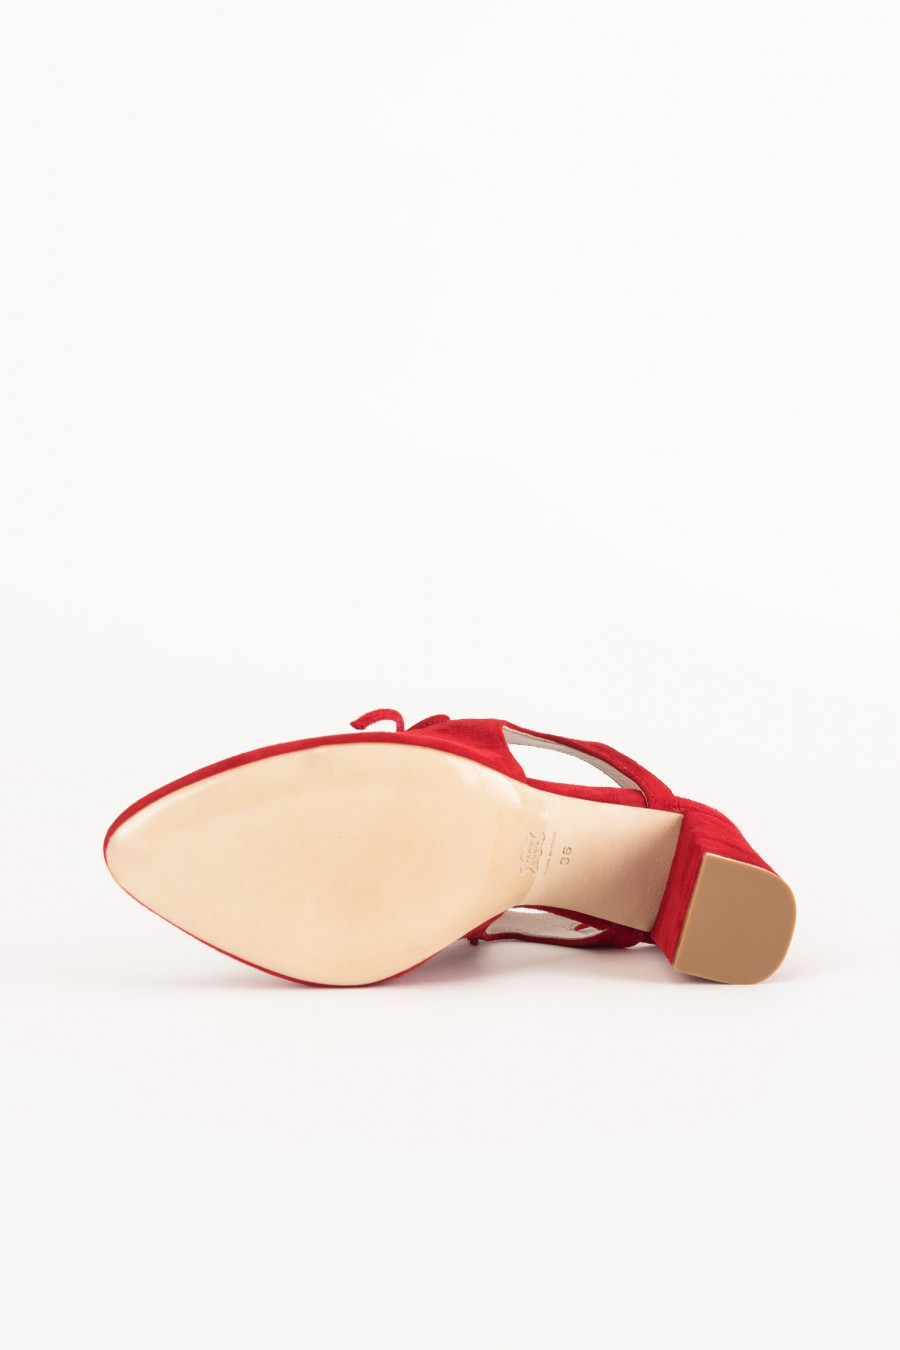 red shoe with laces